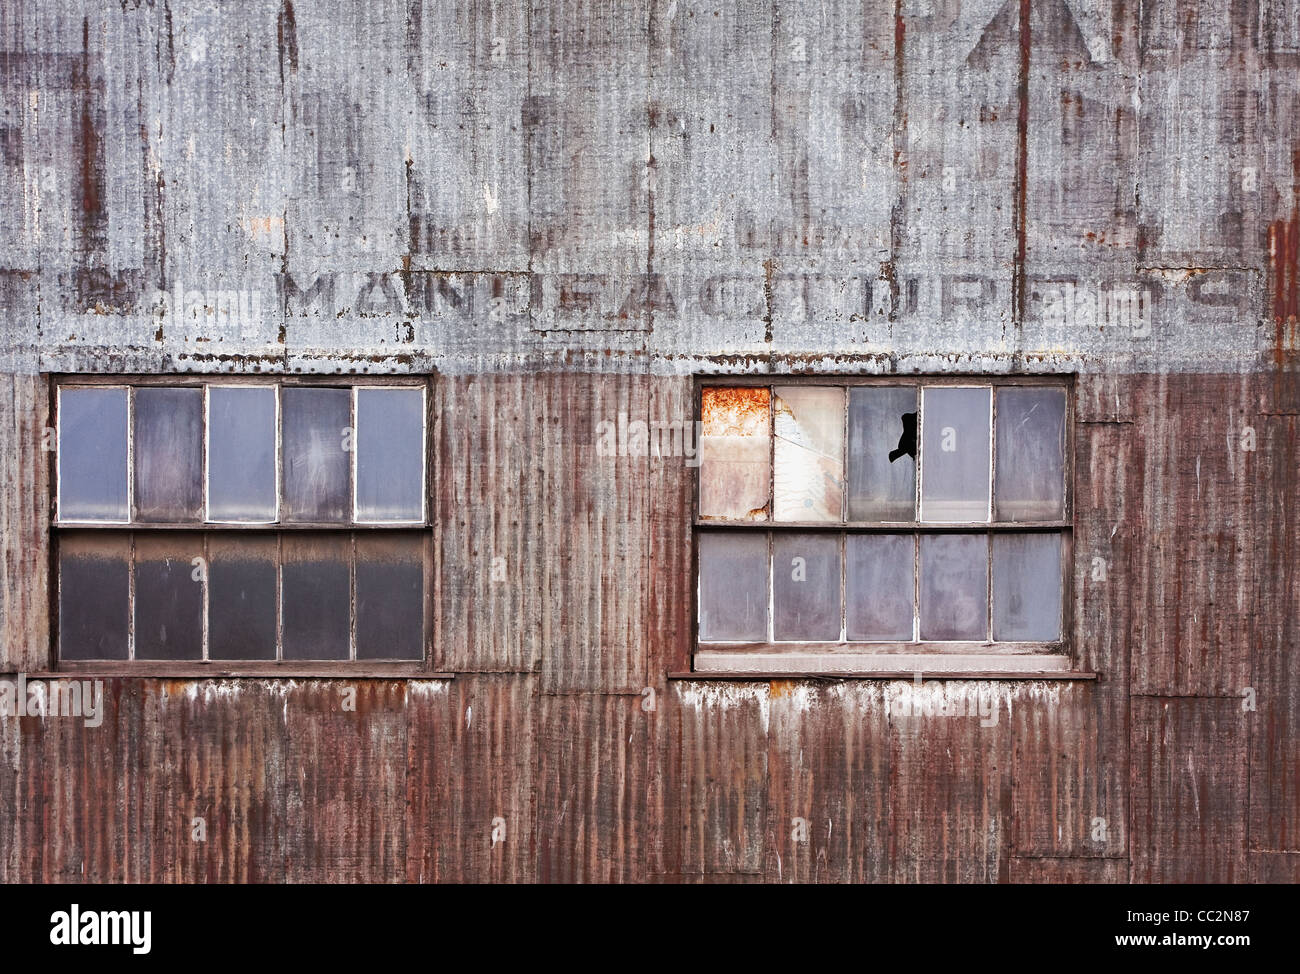 Old corrugated metal warehouse with two windows stock photo old corrugated metal warehouse with two windows sciox Image collections